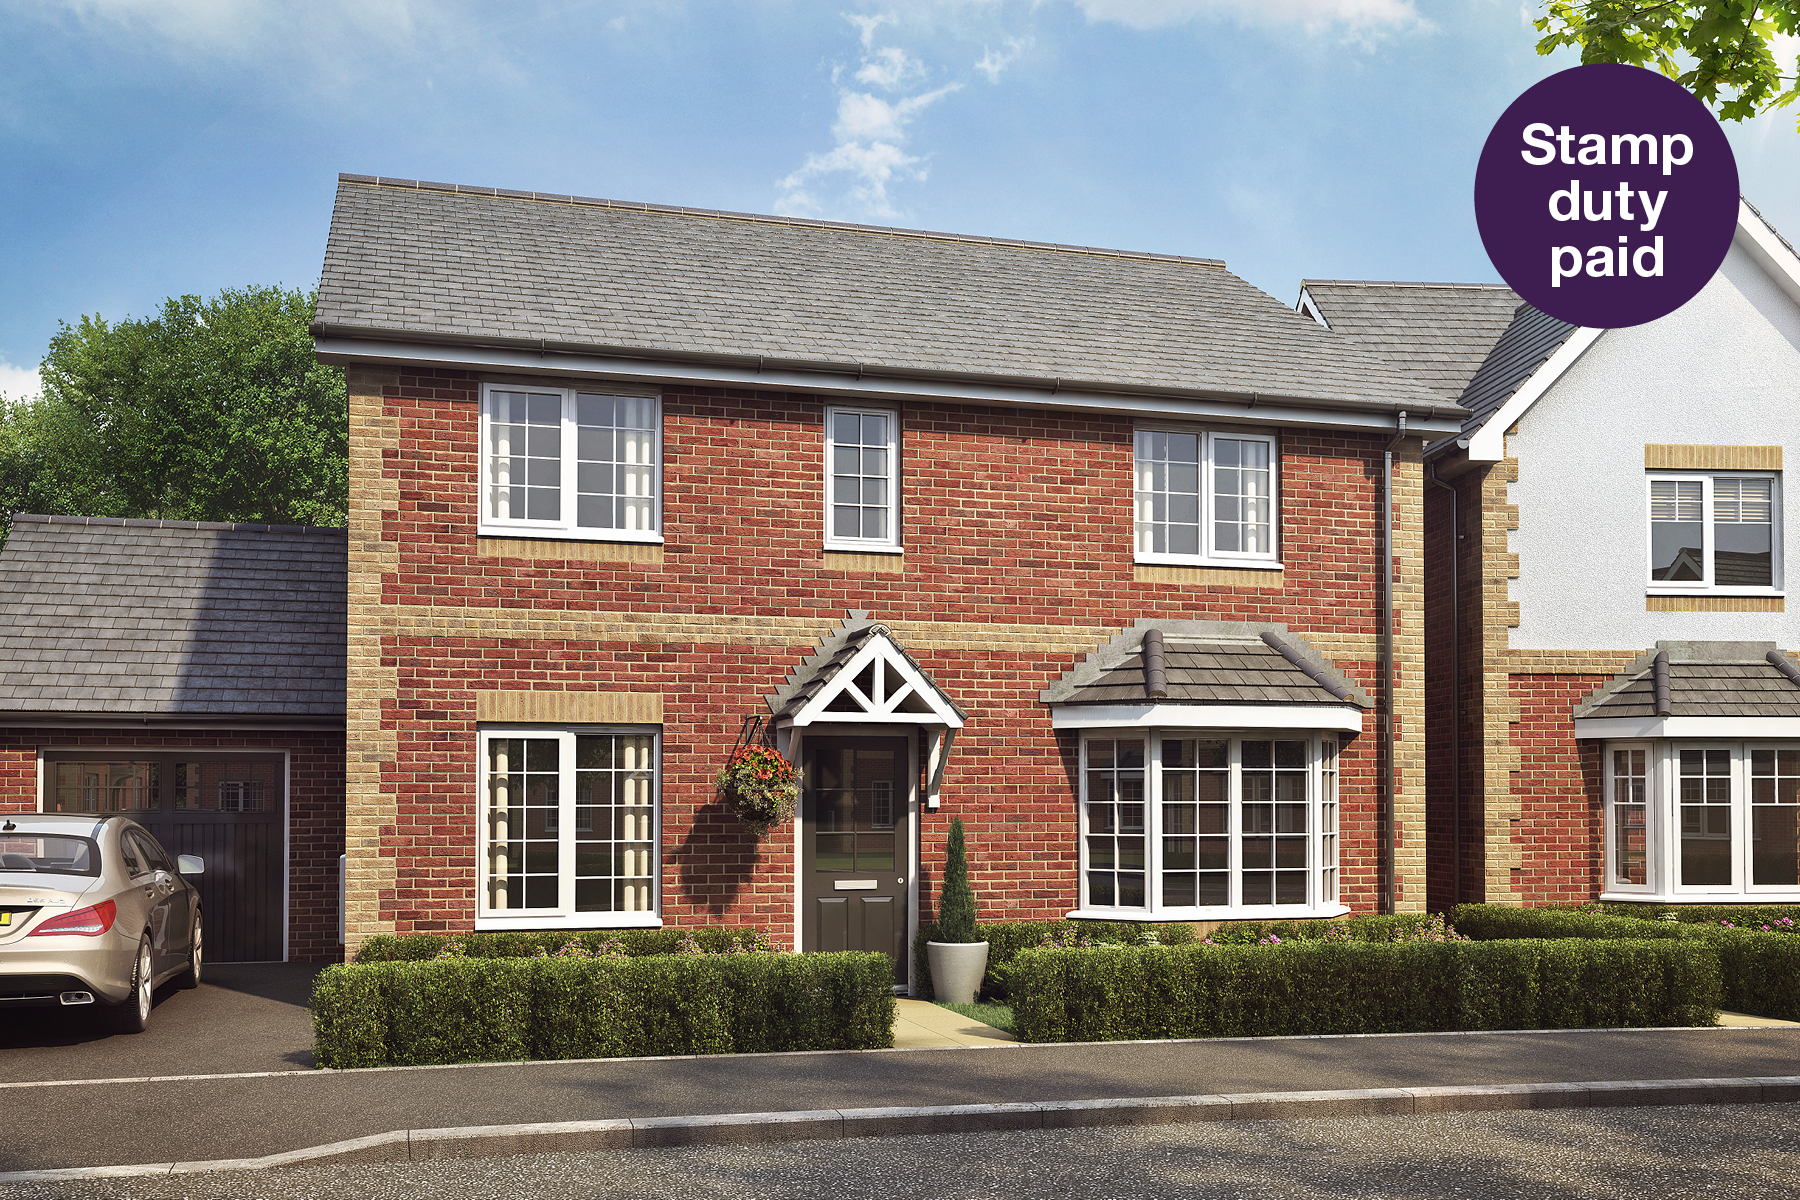 Langton Green - Shelford Stamp Duty Paid Graphic